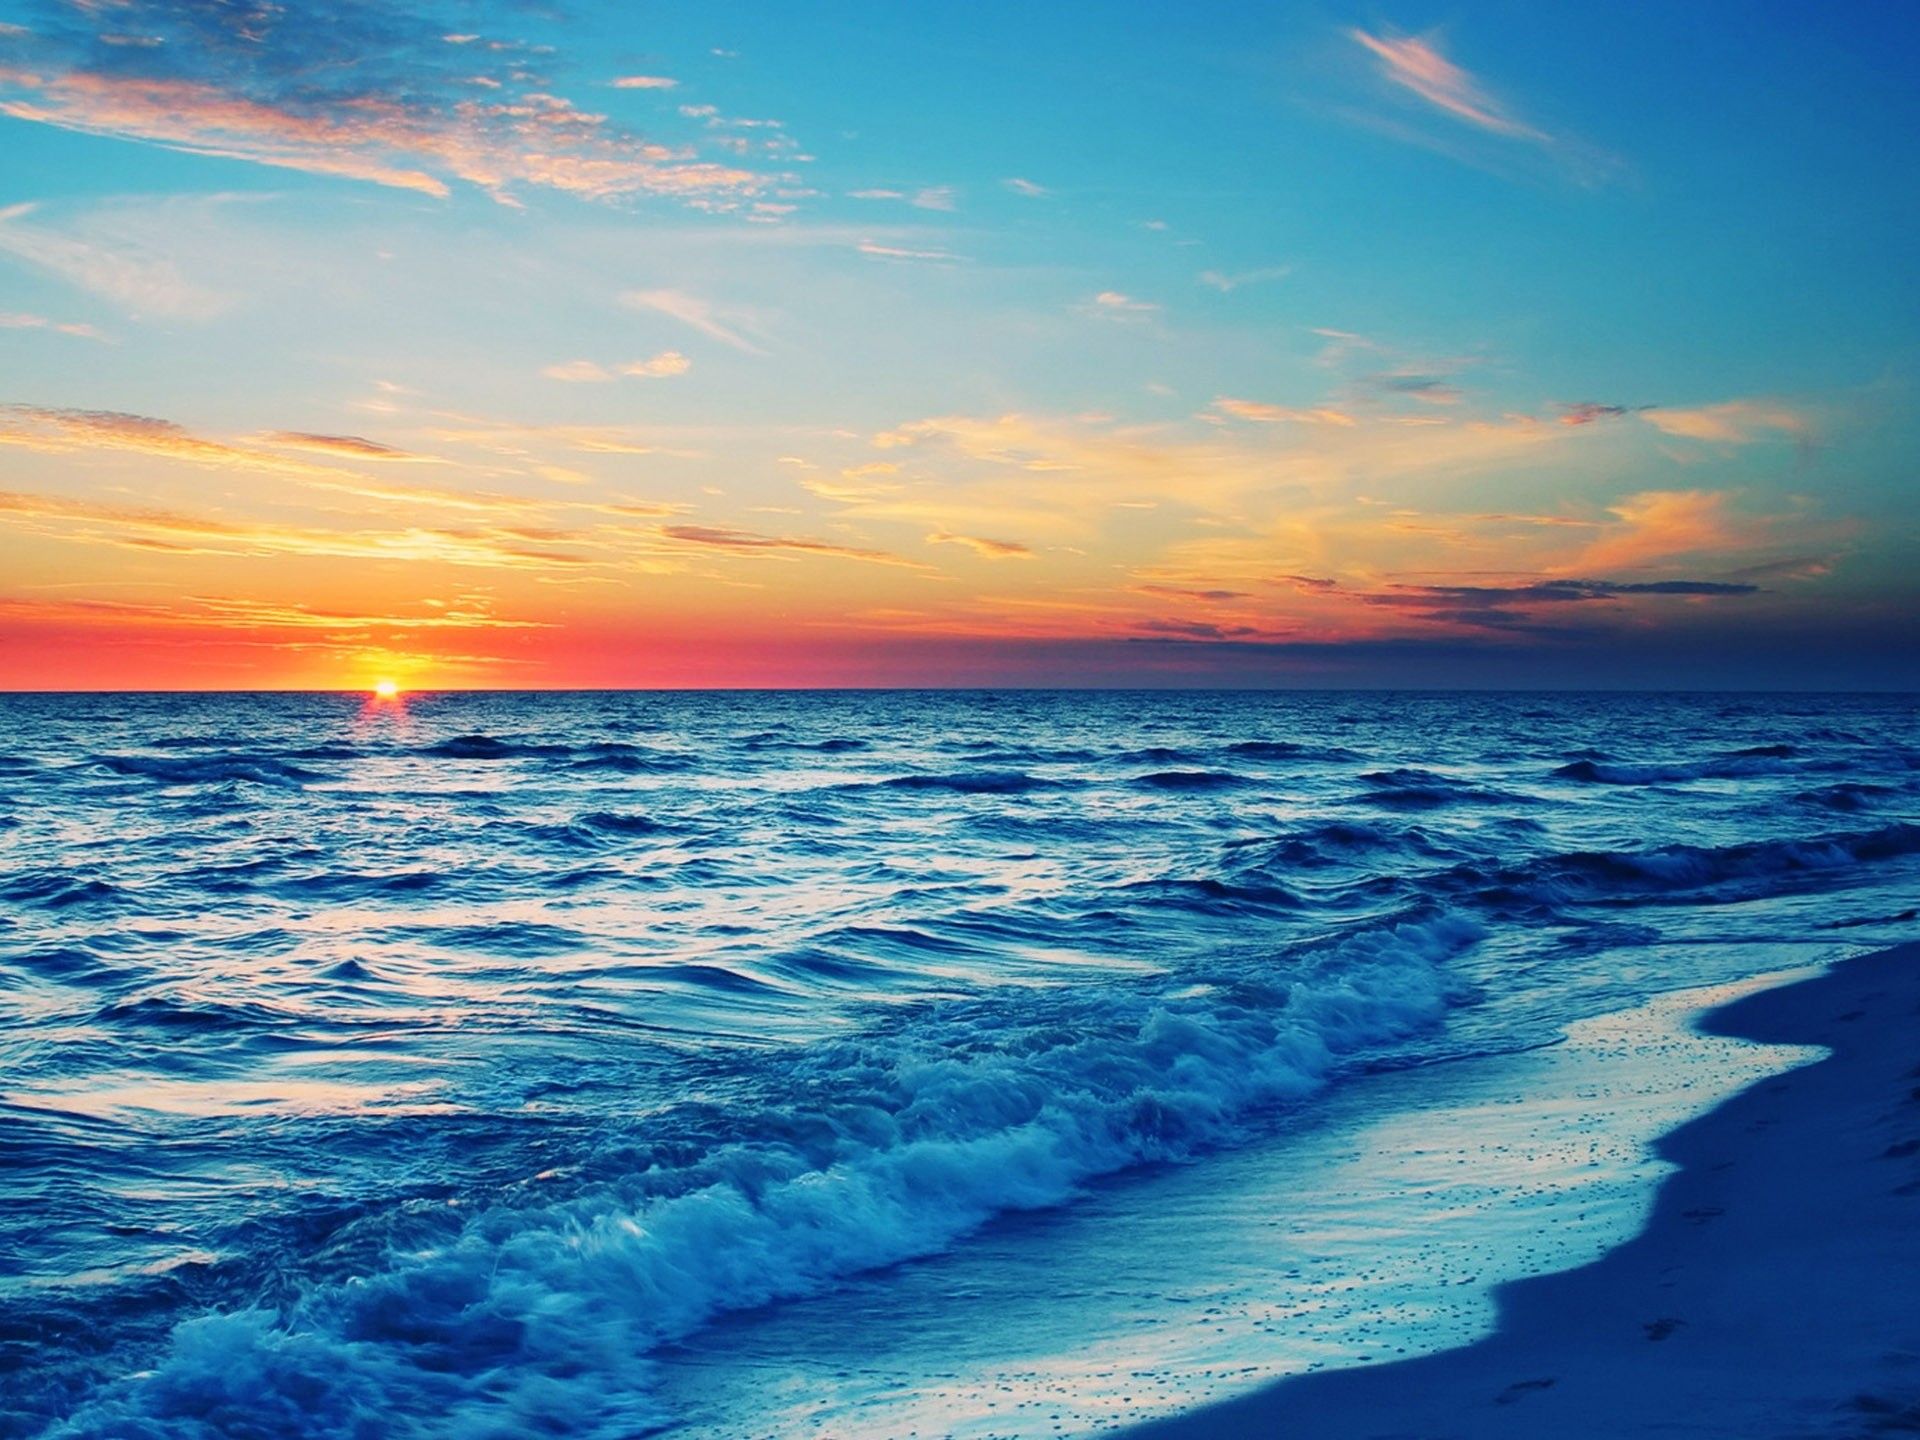 1920x1440 Stunning Ocean Sunset Wallpaper 35977